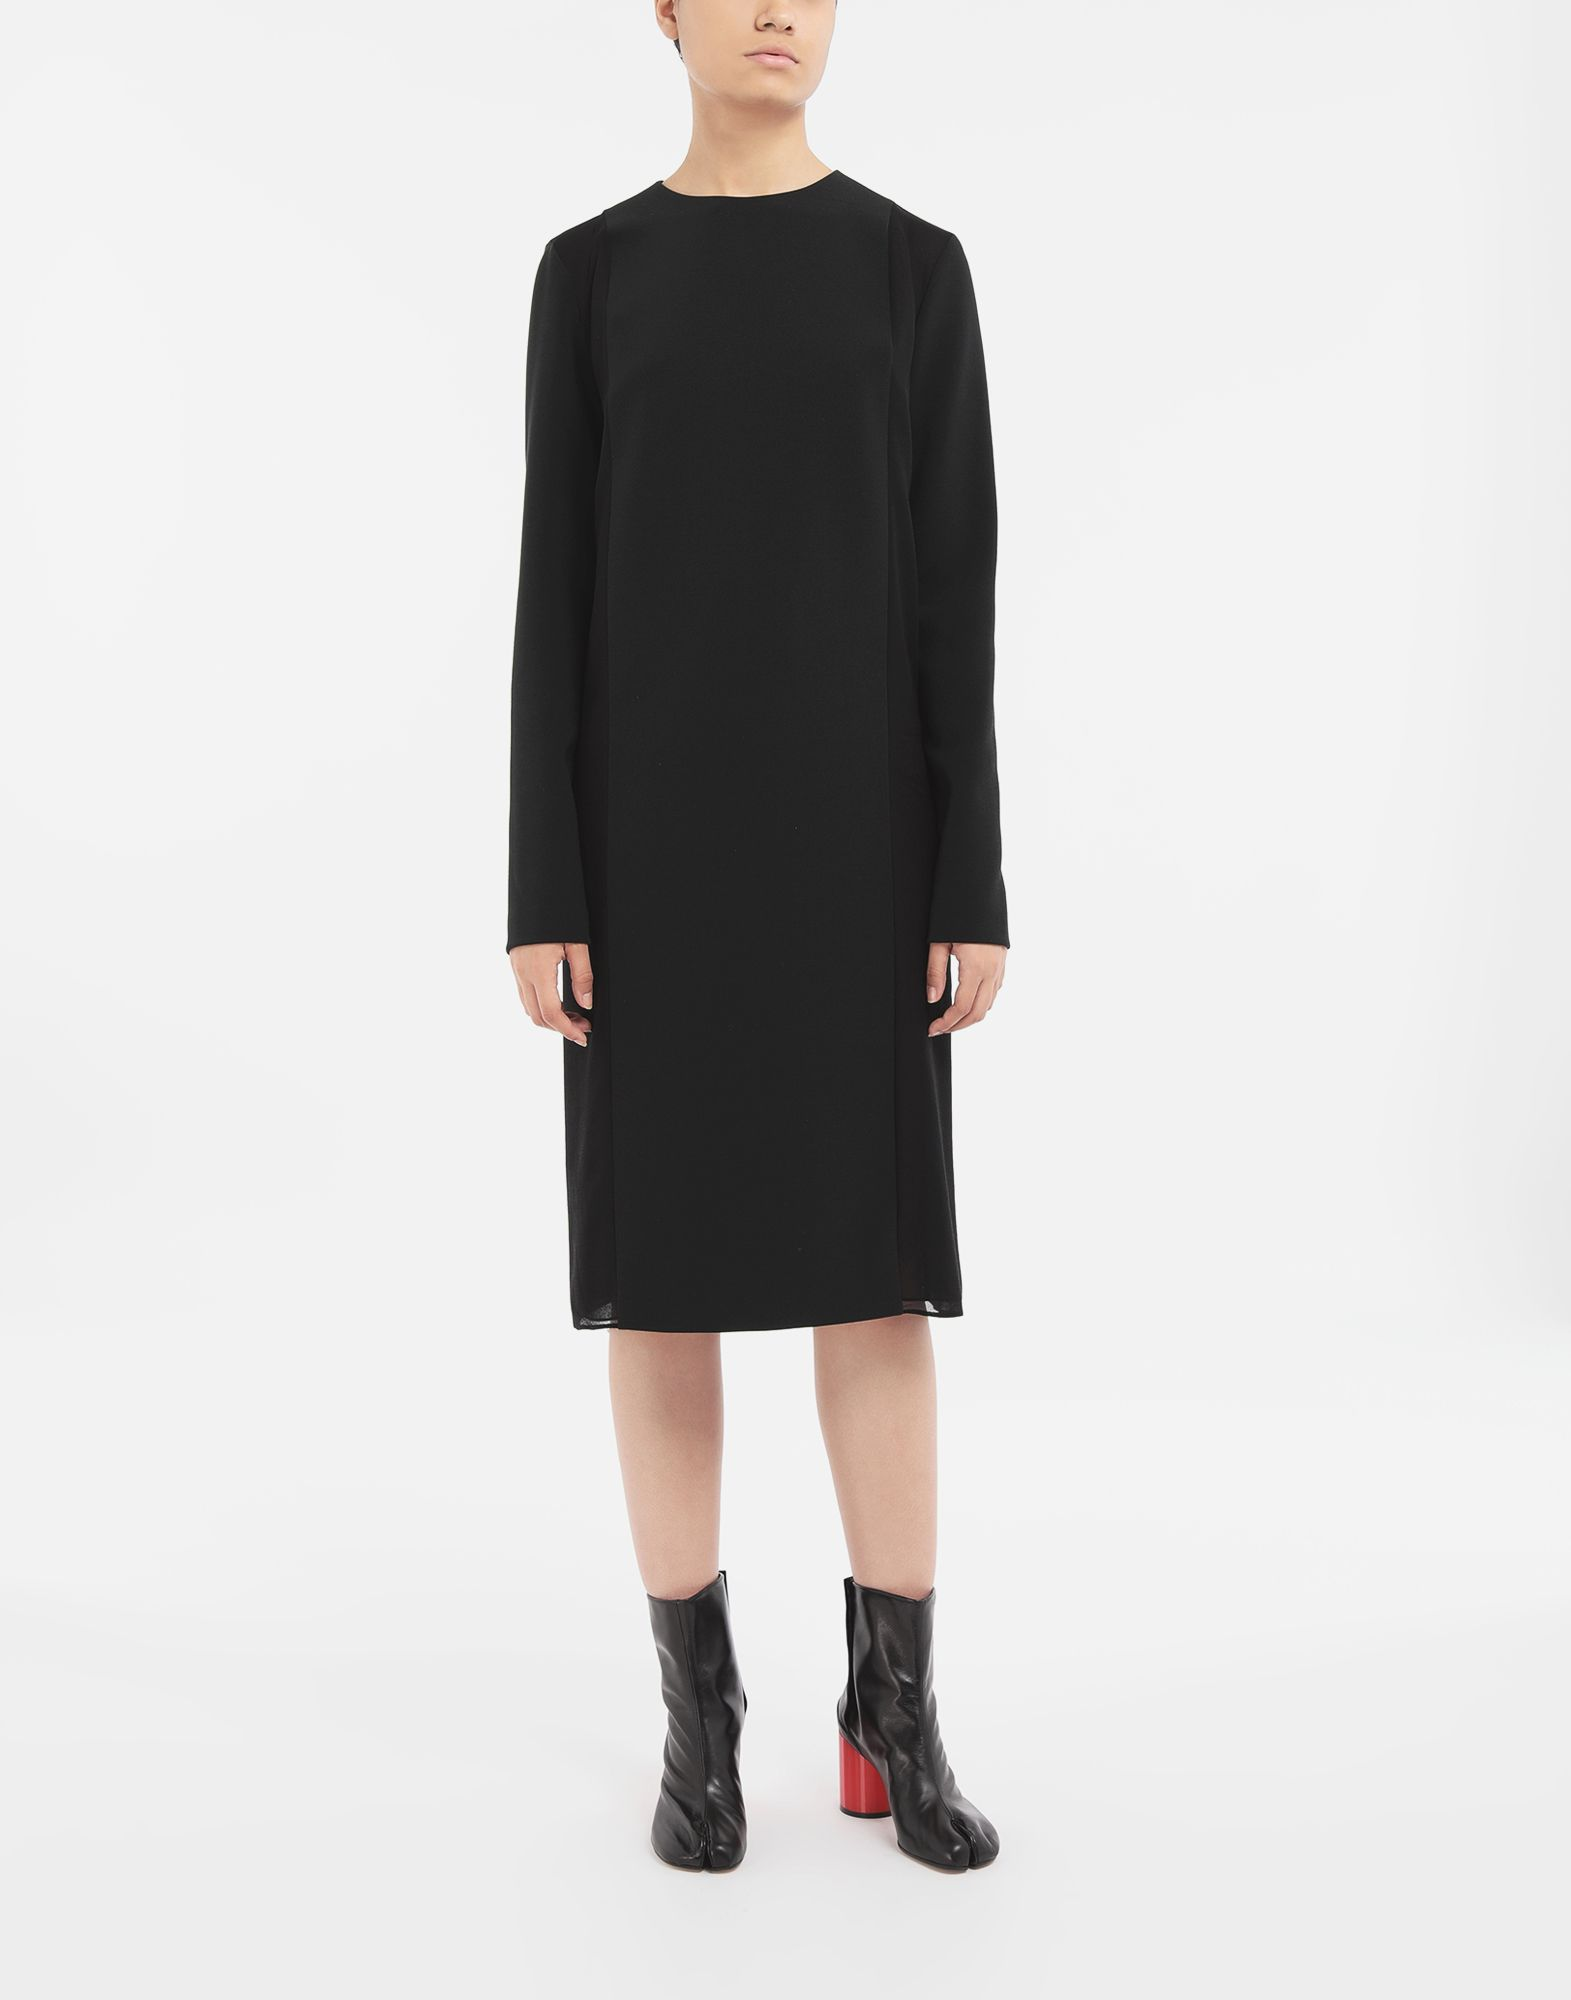 MAISON MARGIELA Spliced dress 3/4 length dress Woman r